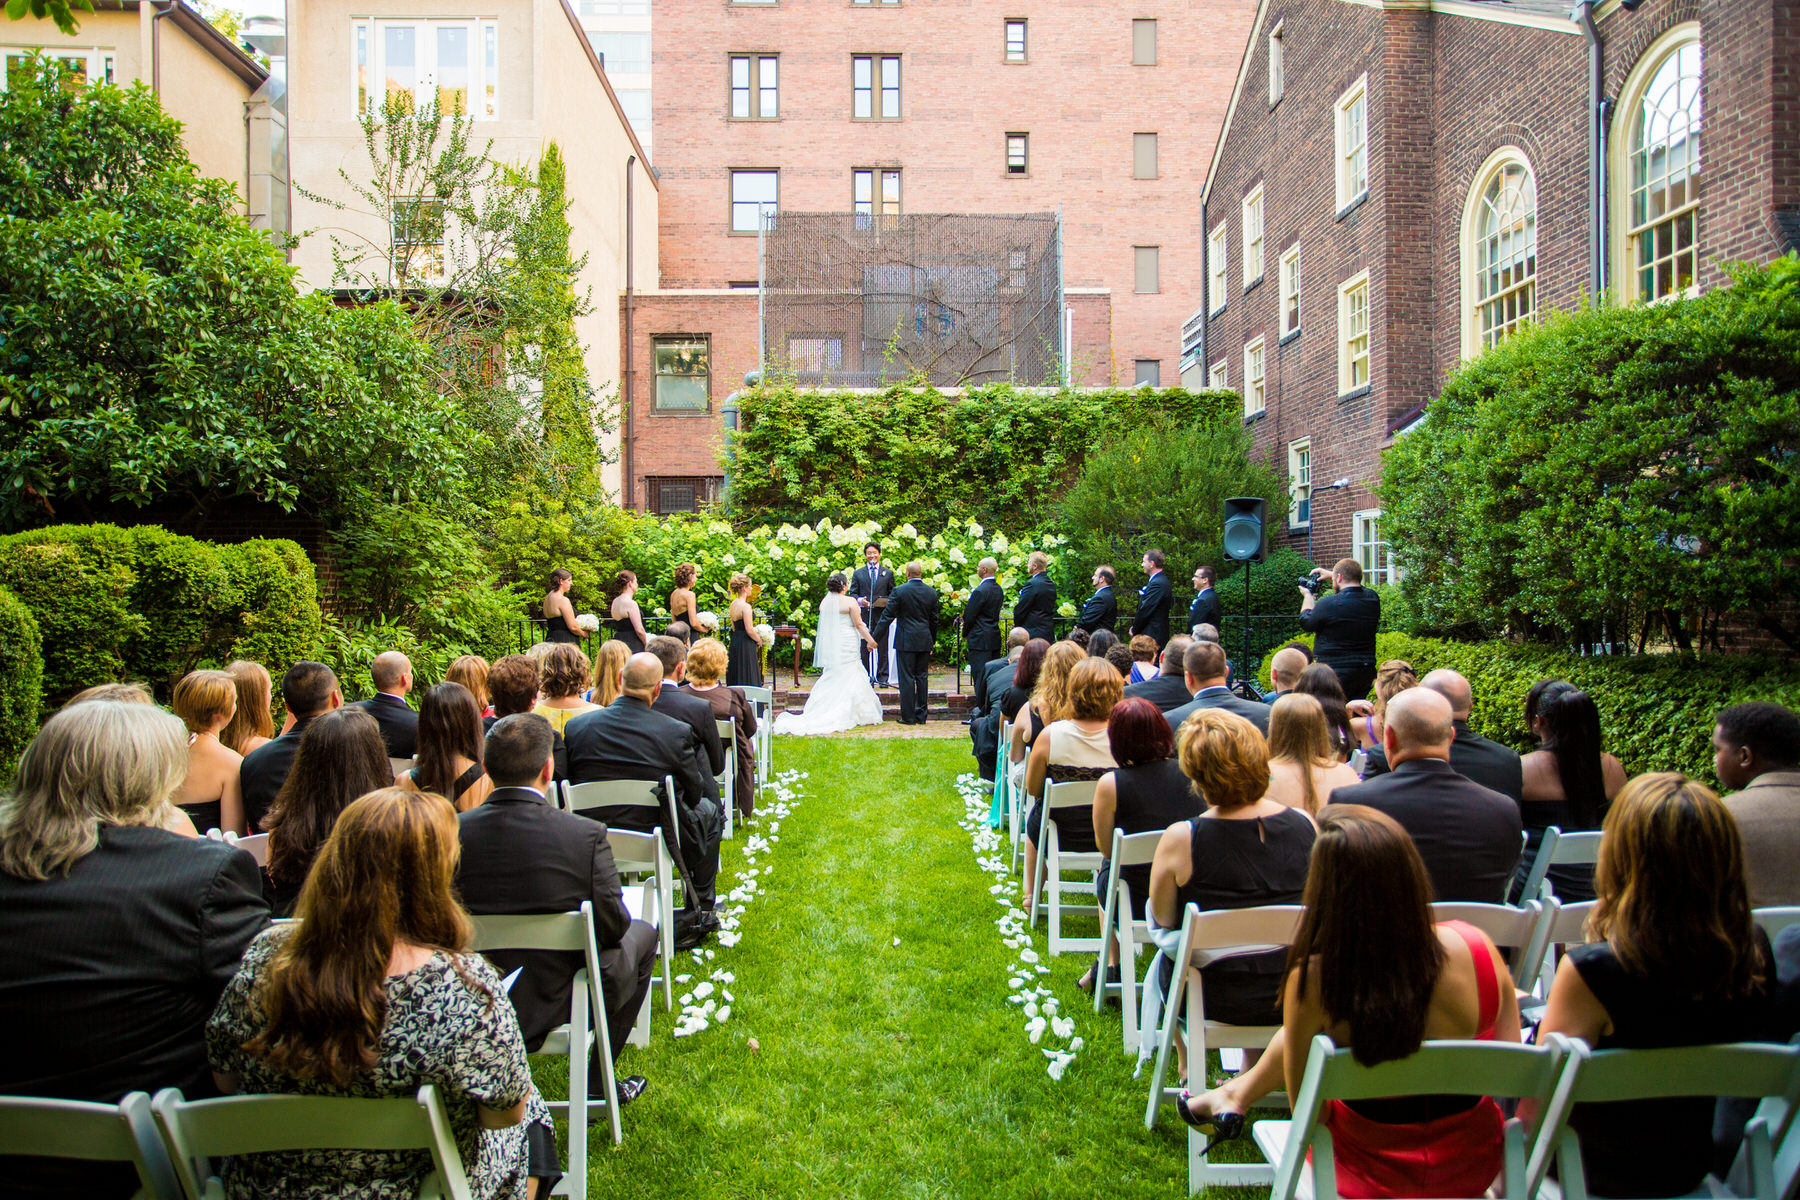 An outdoor ceremony at Philadelphia Colonial Dames Society by Washington DC Wedding Photographer Adam Mason